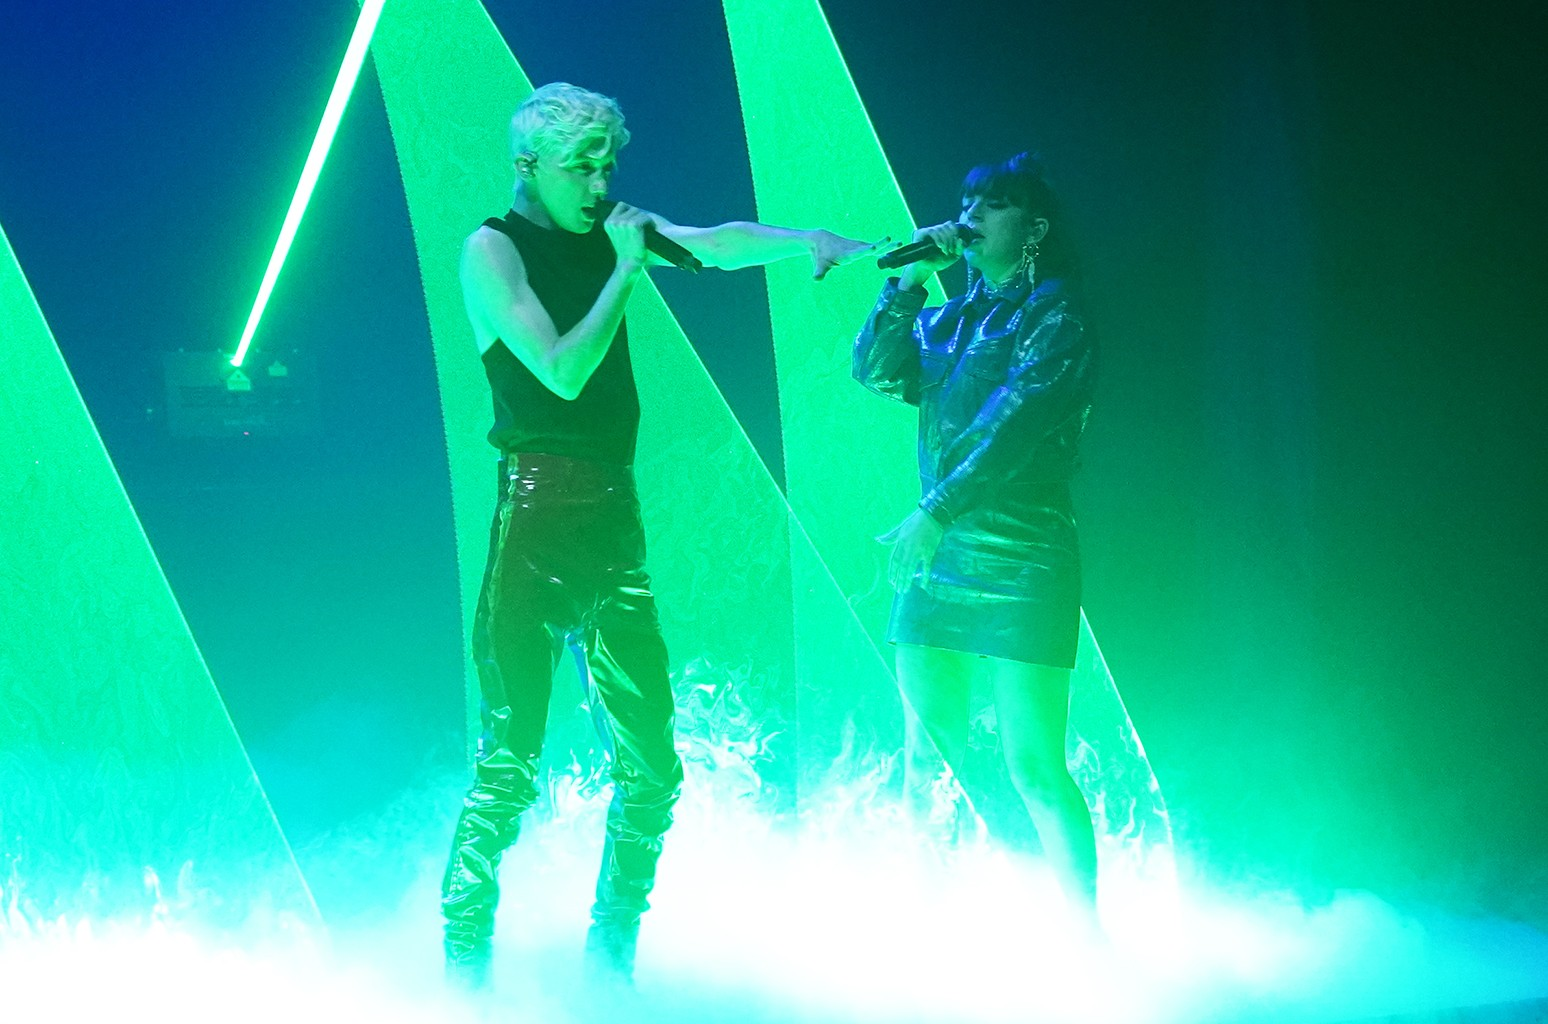 Troye Sivan & Charli XCX perform on The Tonight Show Starring Jimmy Fallon on Nov. 12, 2018.